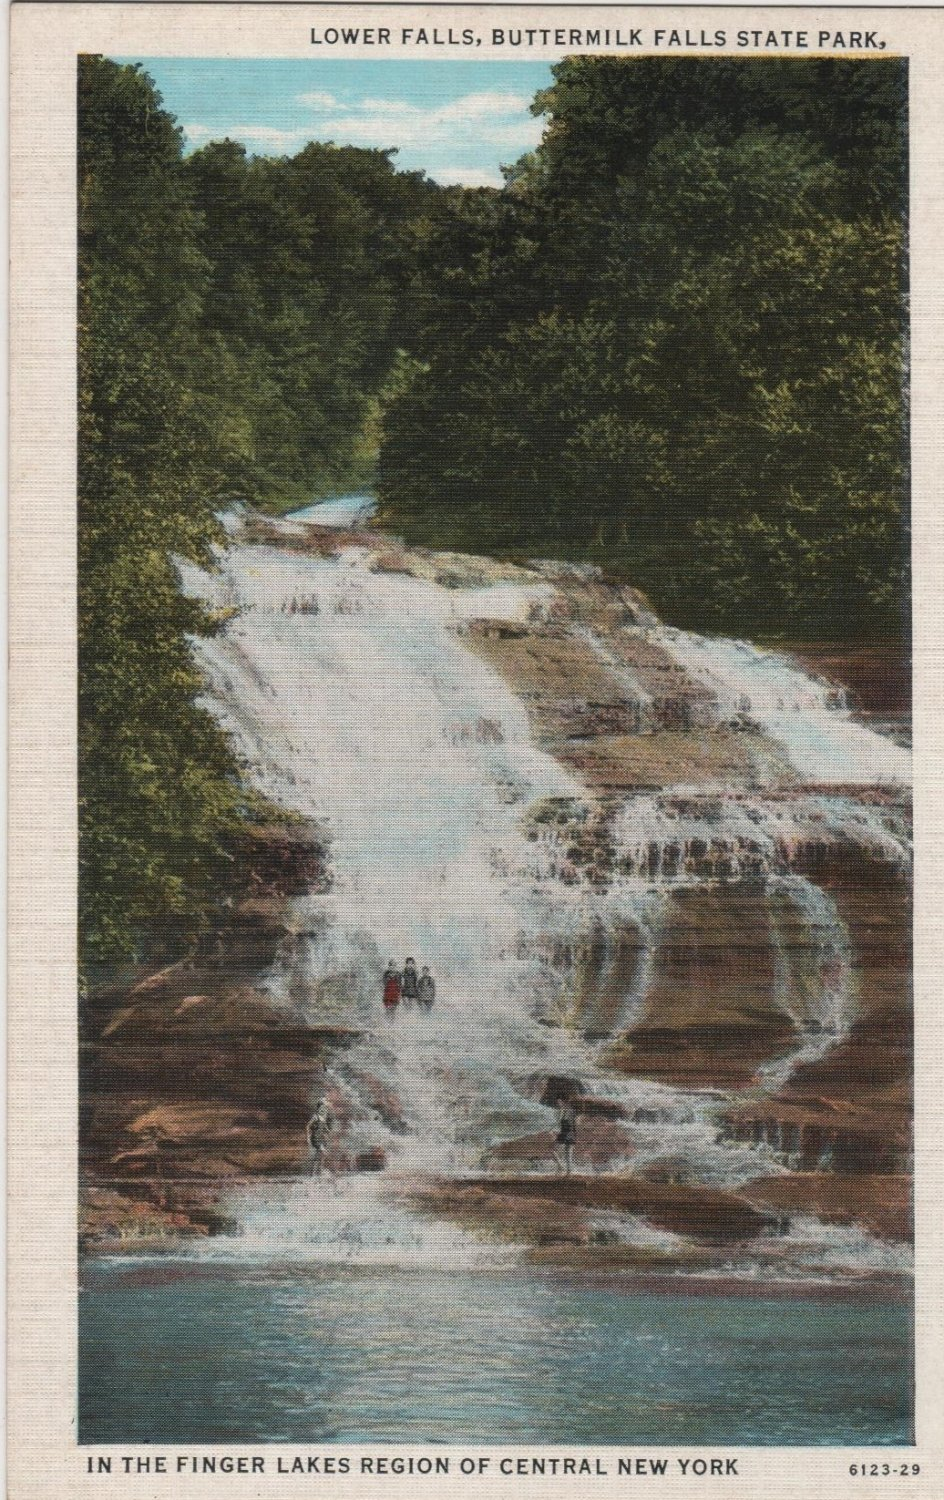 New York Landscape Postcard, Lower Falls at Buttermilk Falls State Park, Finger Lakes Region c.1929